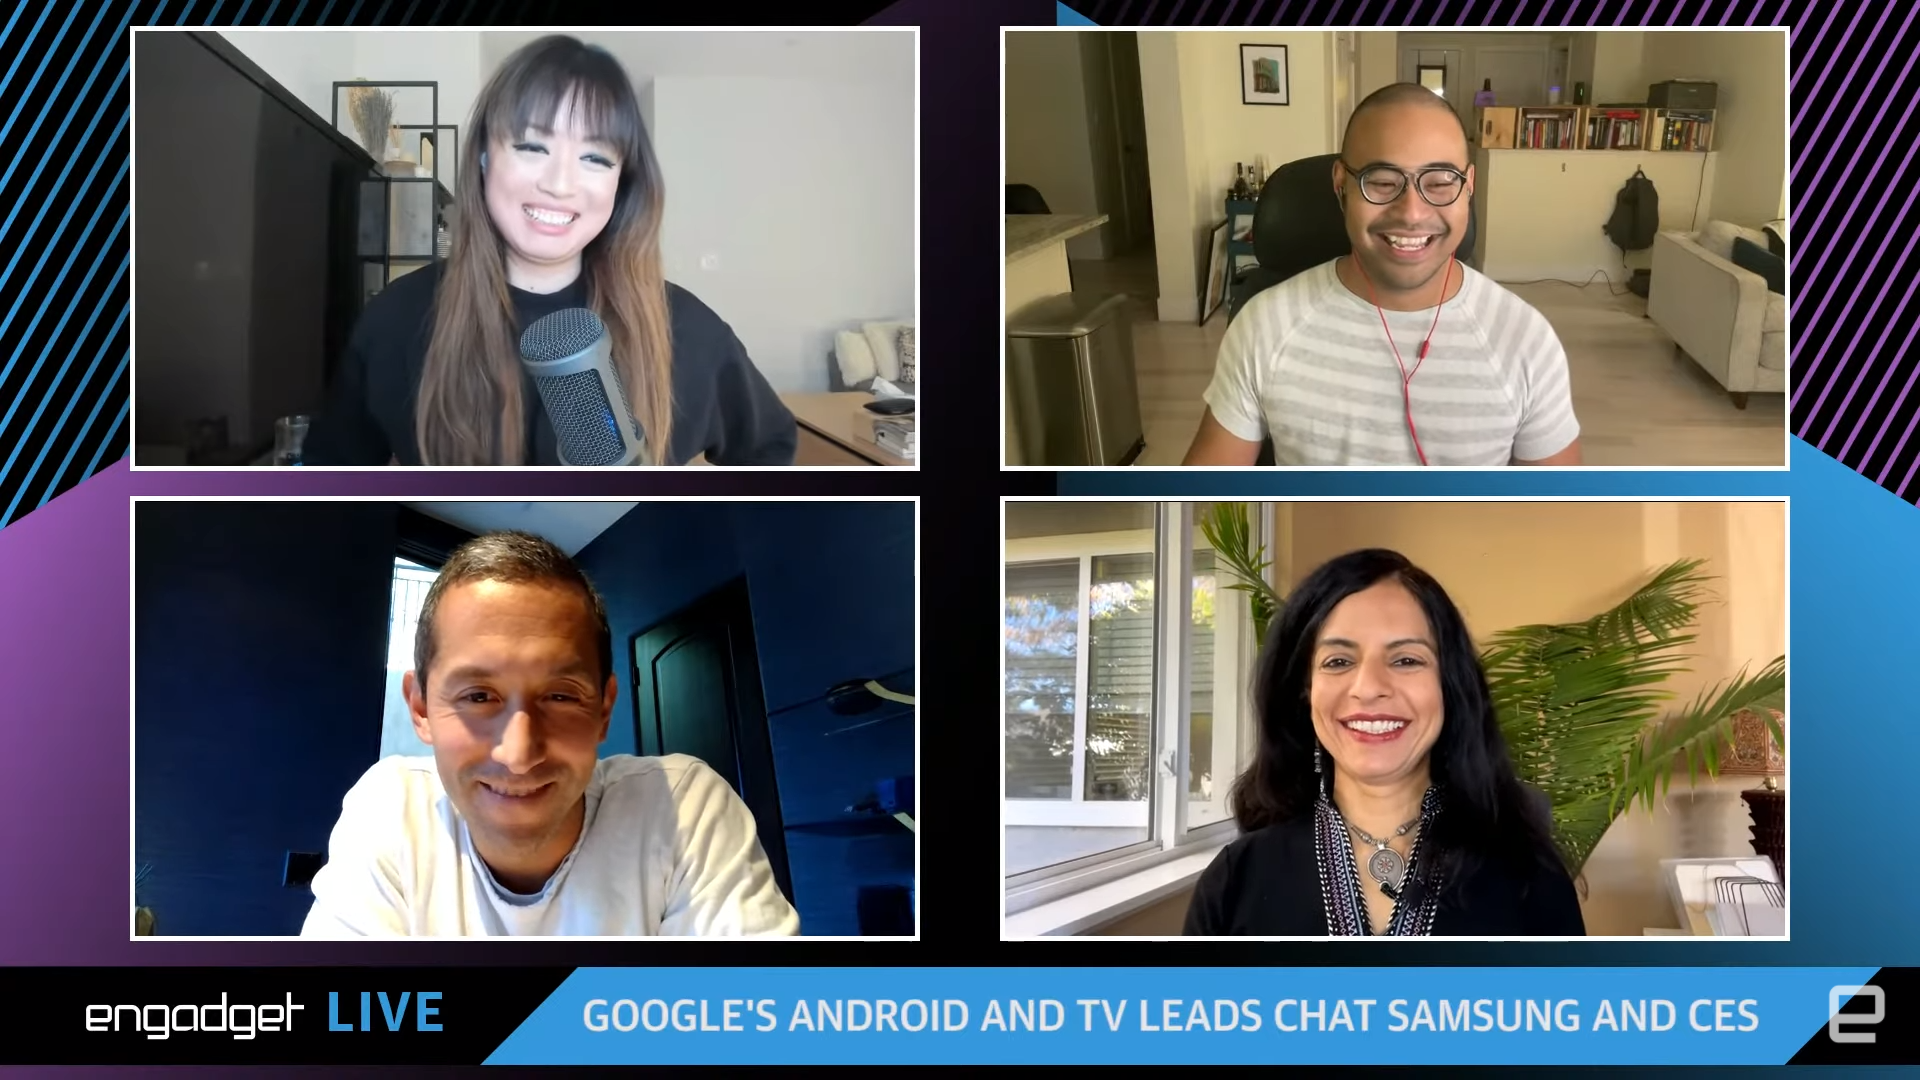 Google's Android and TV leads chat Samsung, RCS and CES